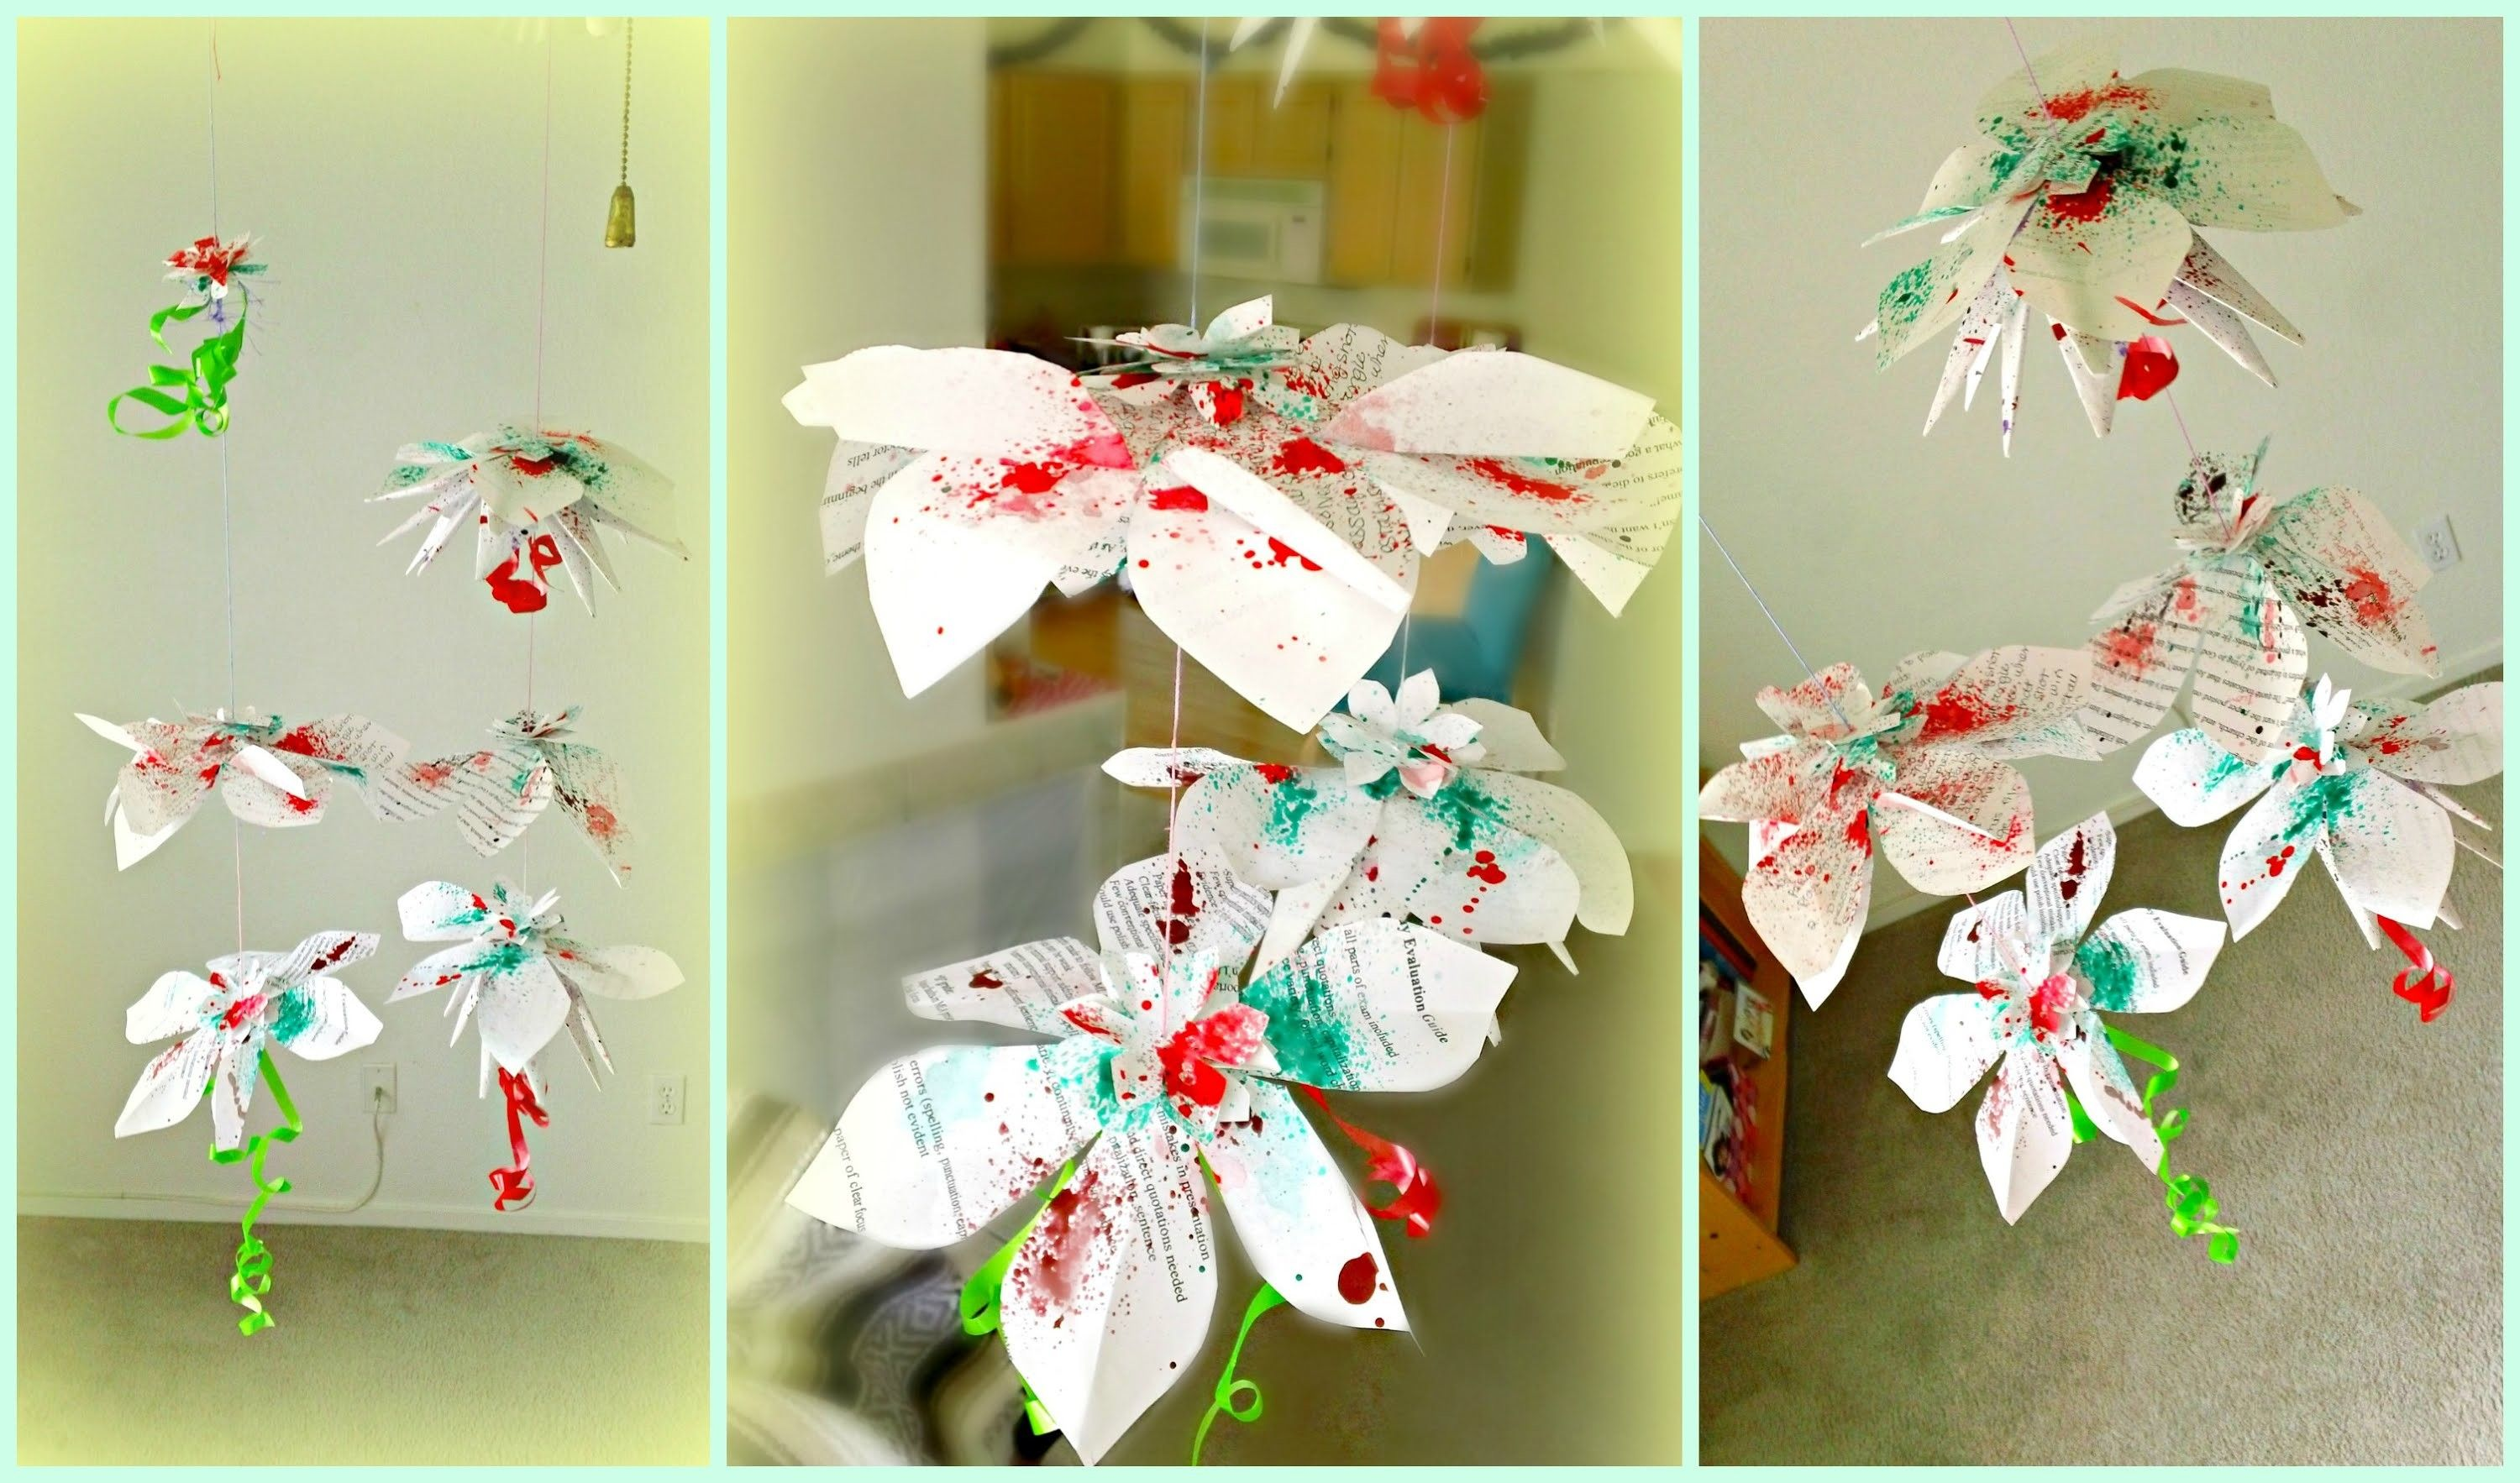 *DIY Hanging Flowers Paper Decorations*